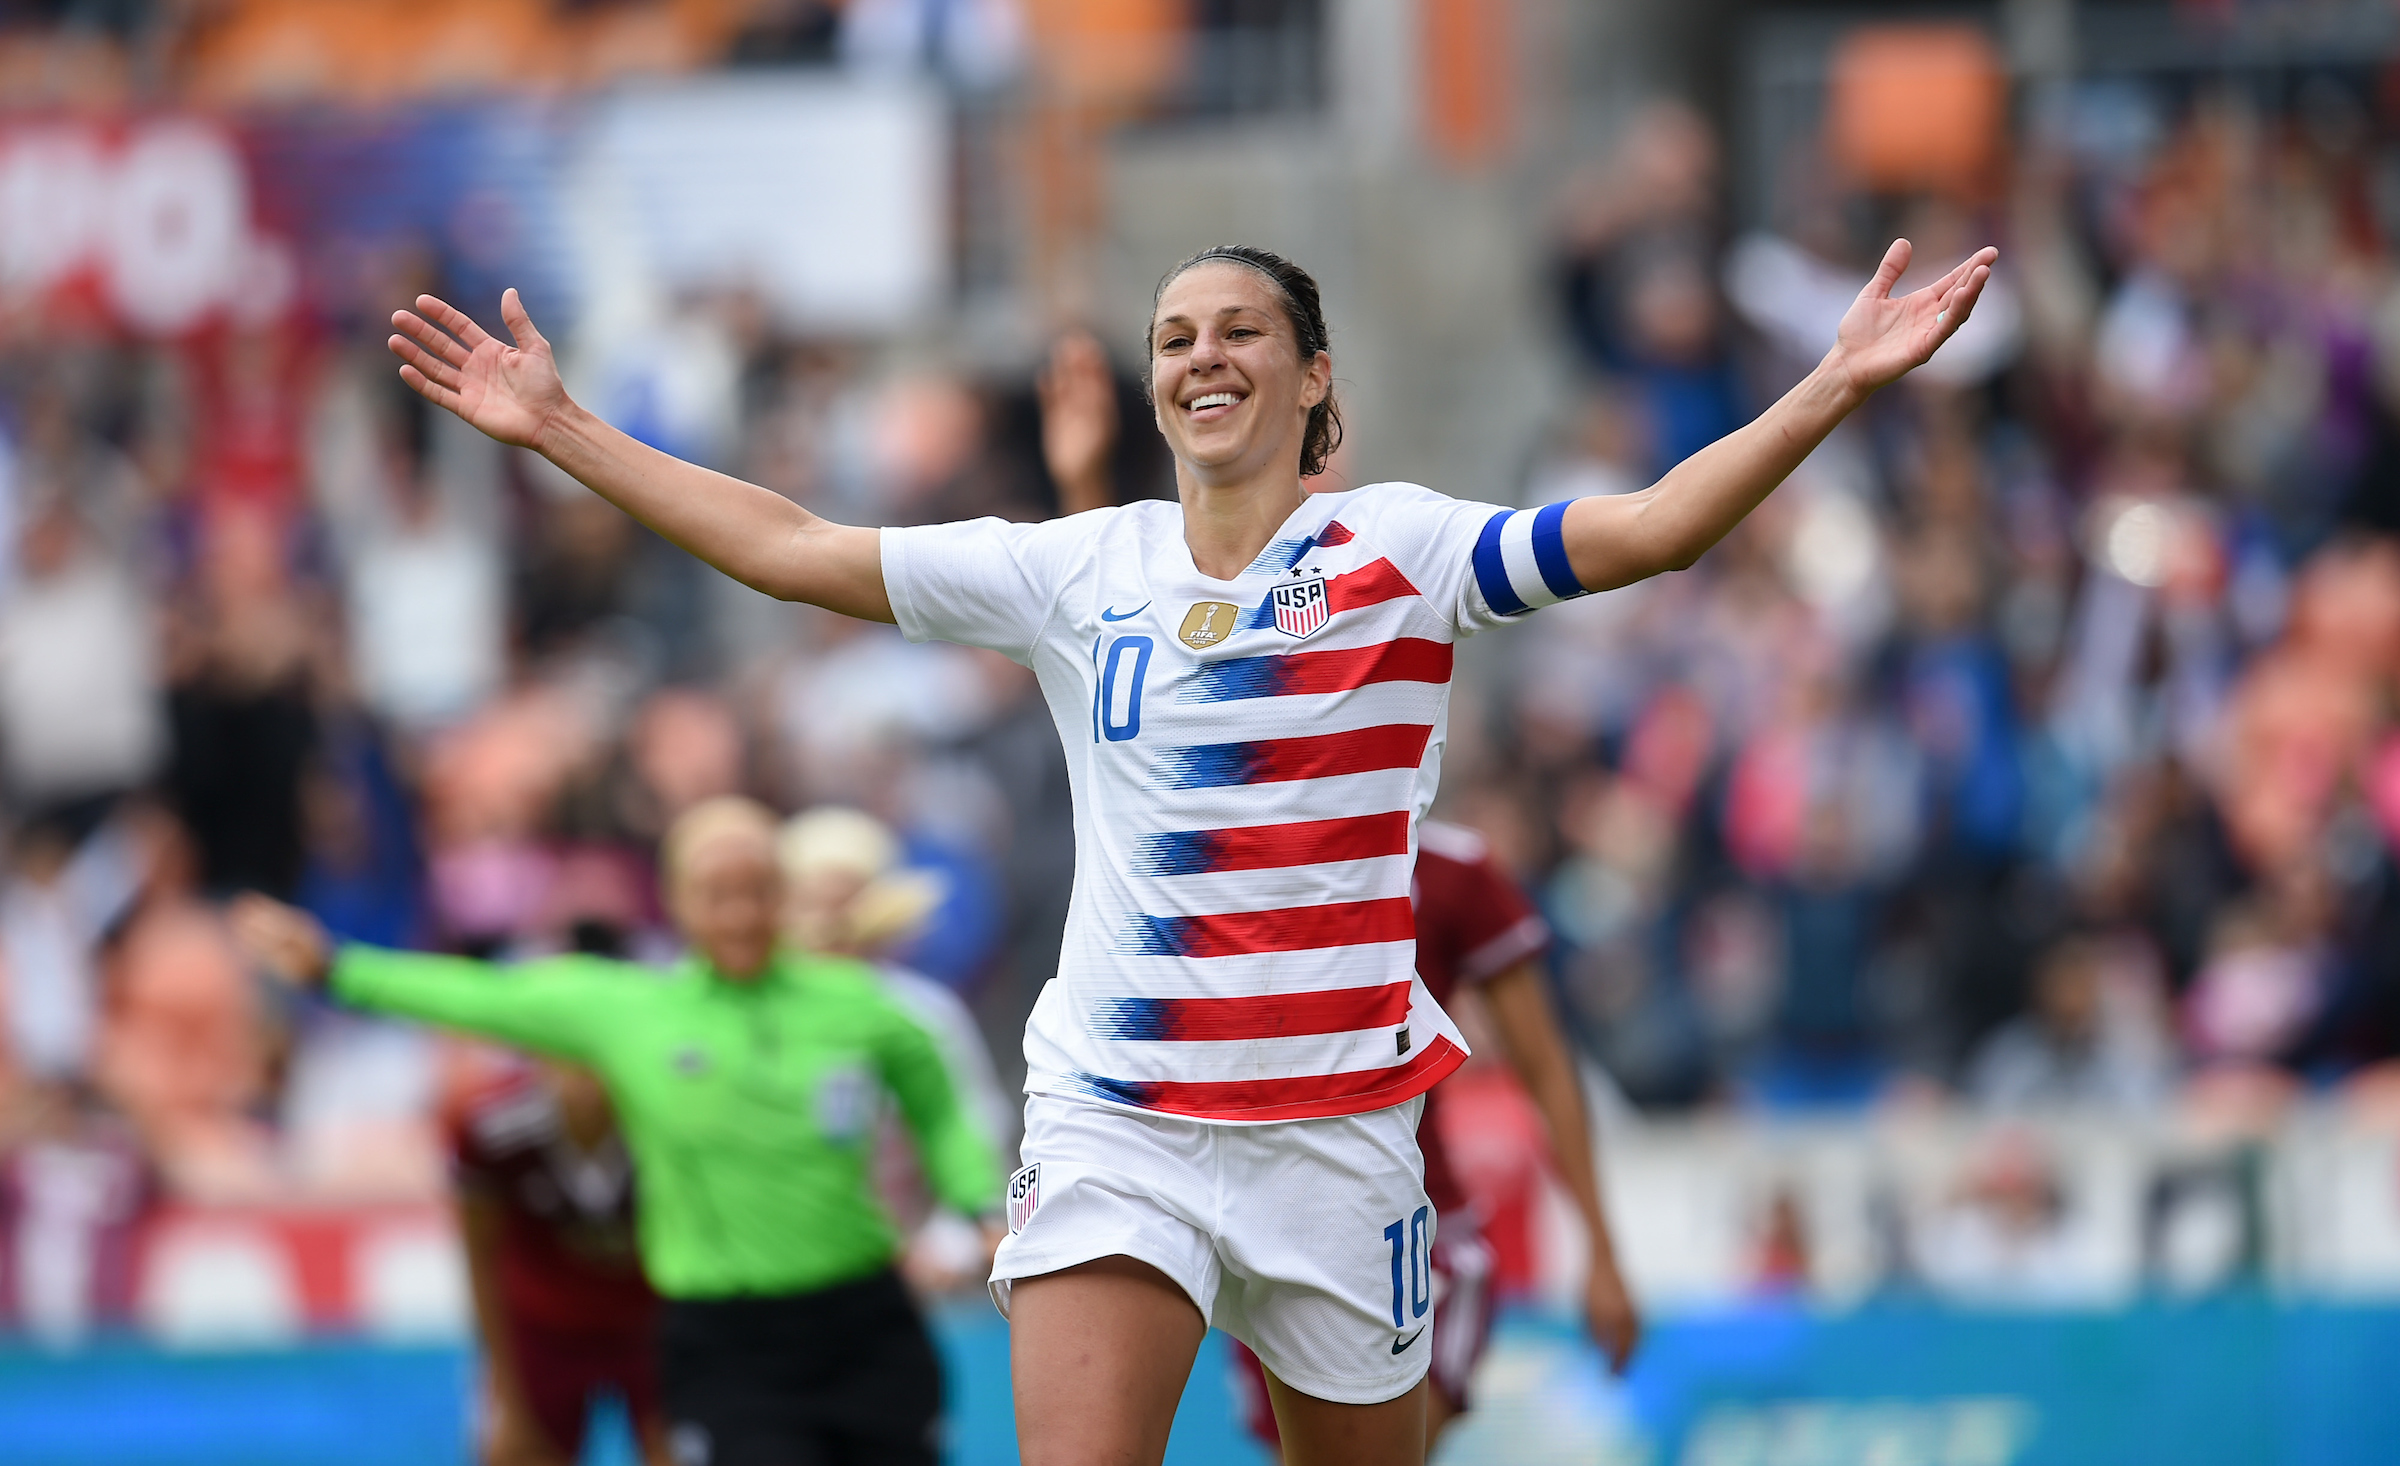 Houston, TX - Sunday April 8, 2018: Carli Lloyd celebrates her 100th career goal during an International friendly match versus the women's National teams of the United States (USA) and Mexico (MEX) at BBVA Compass Stadiu